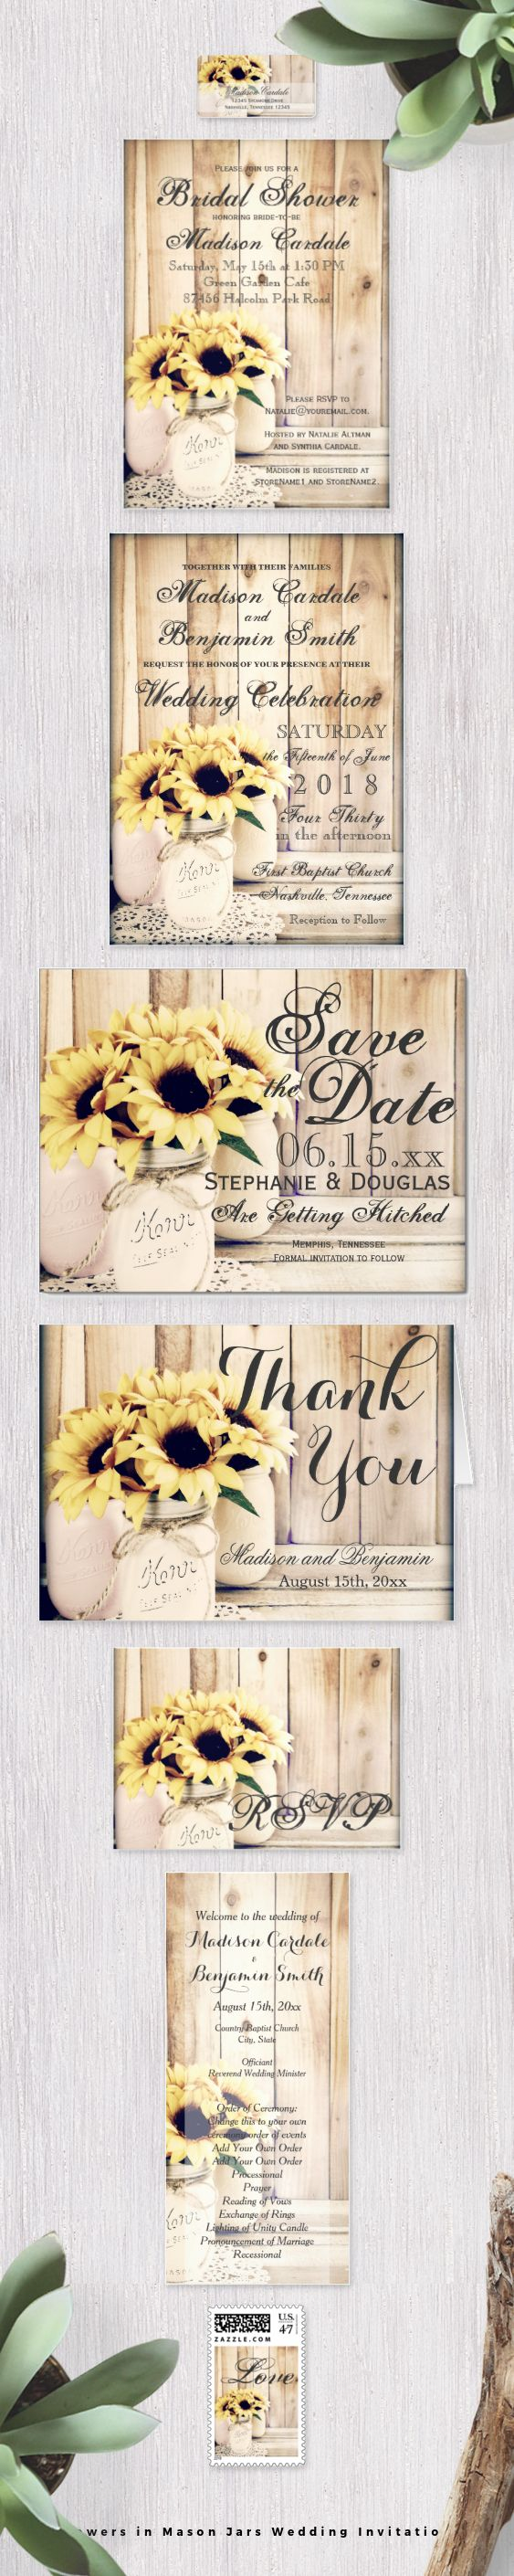 Sunflowers In Mason Jars Wedding Invitation Set With Bouquets Of